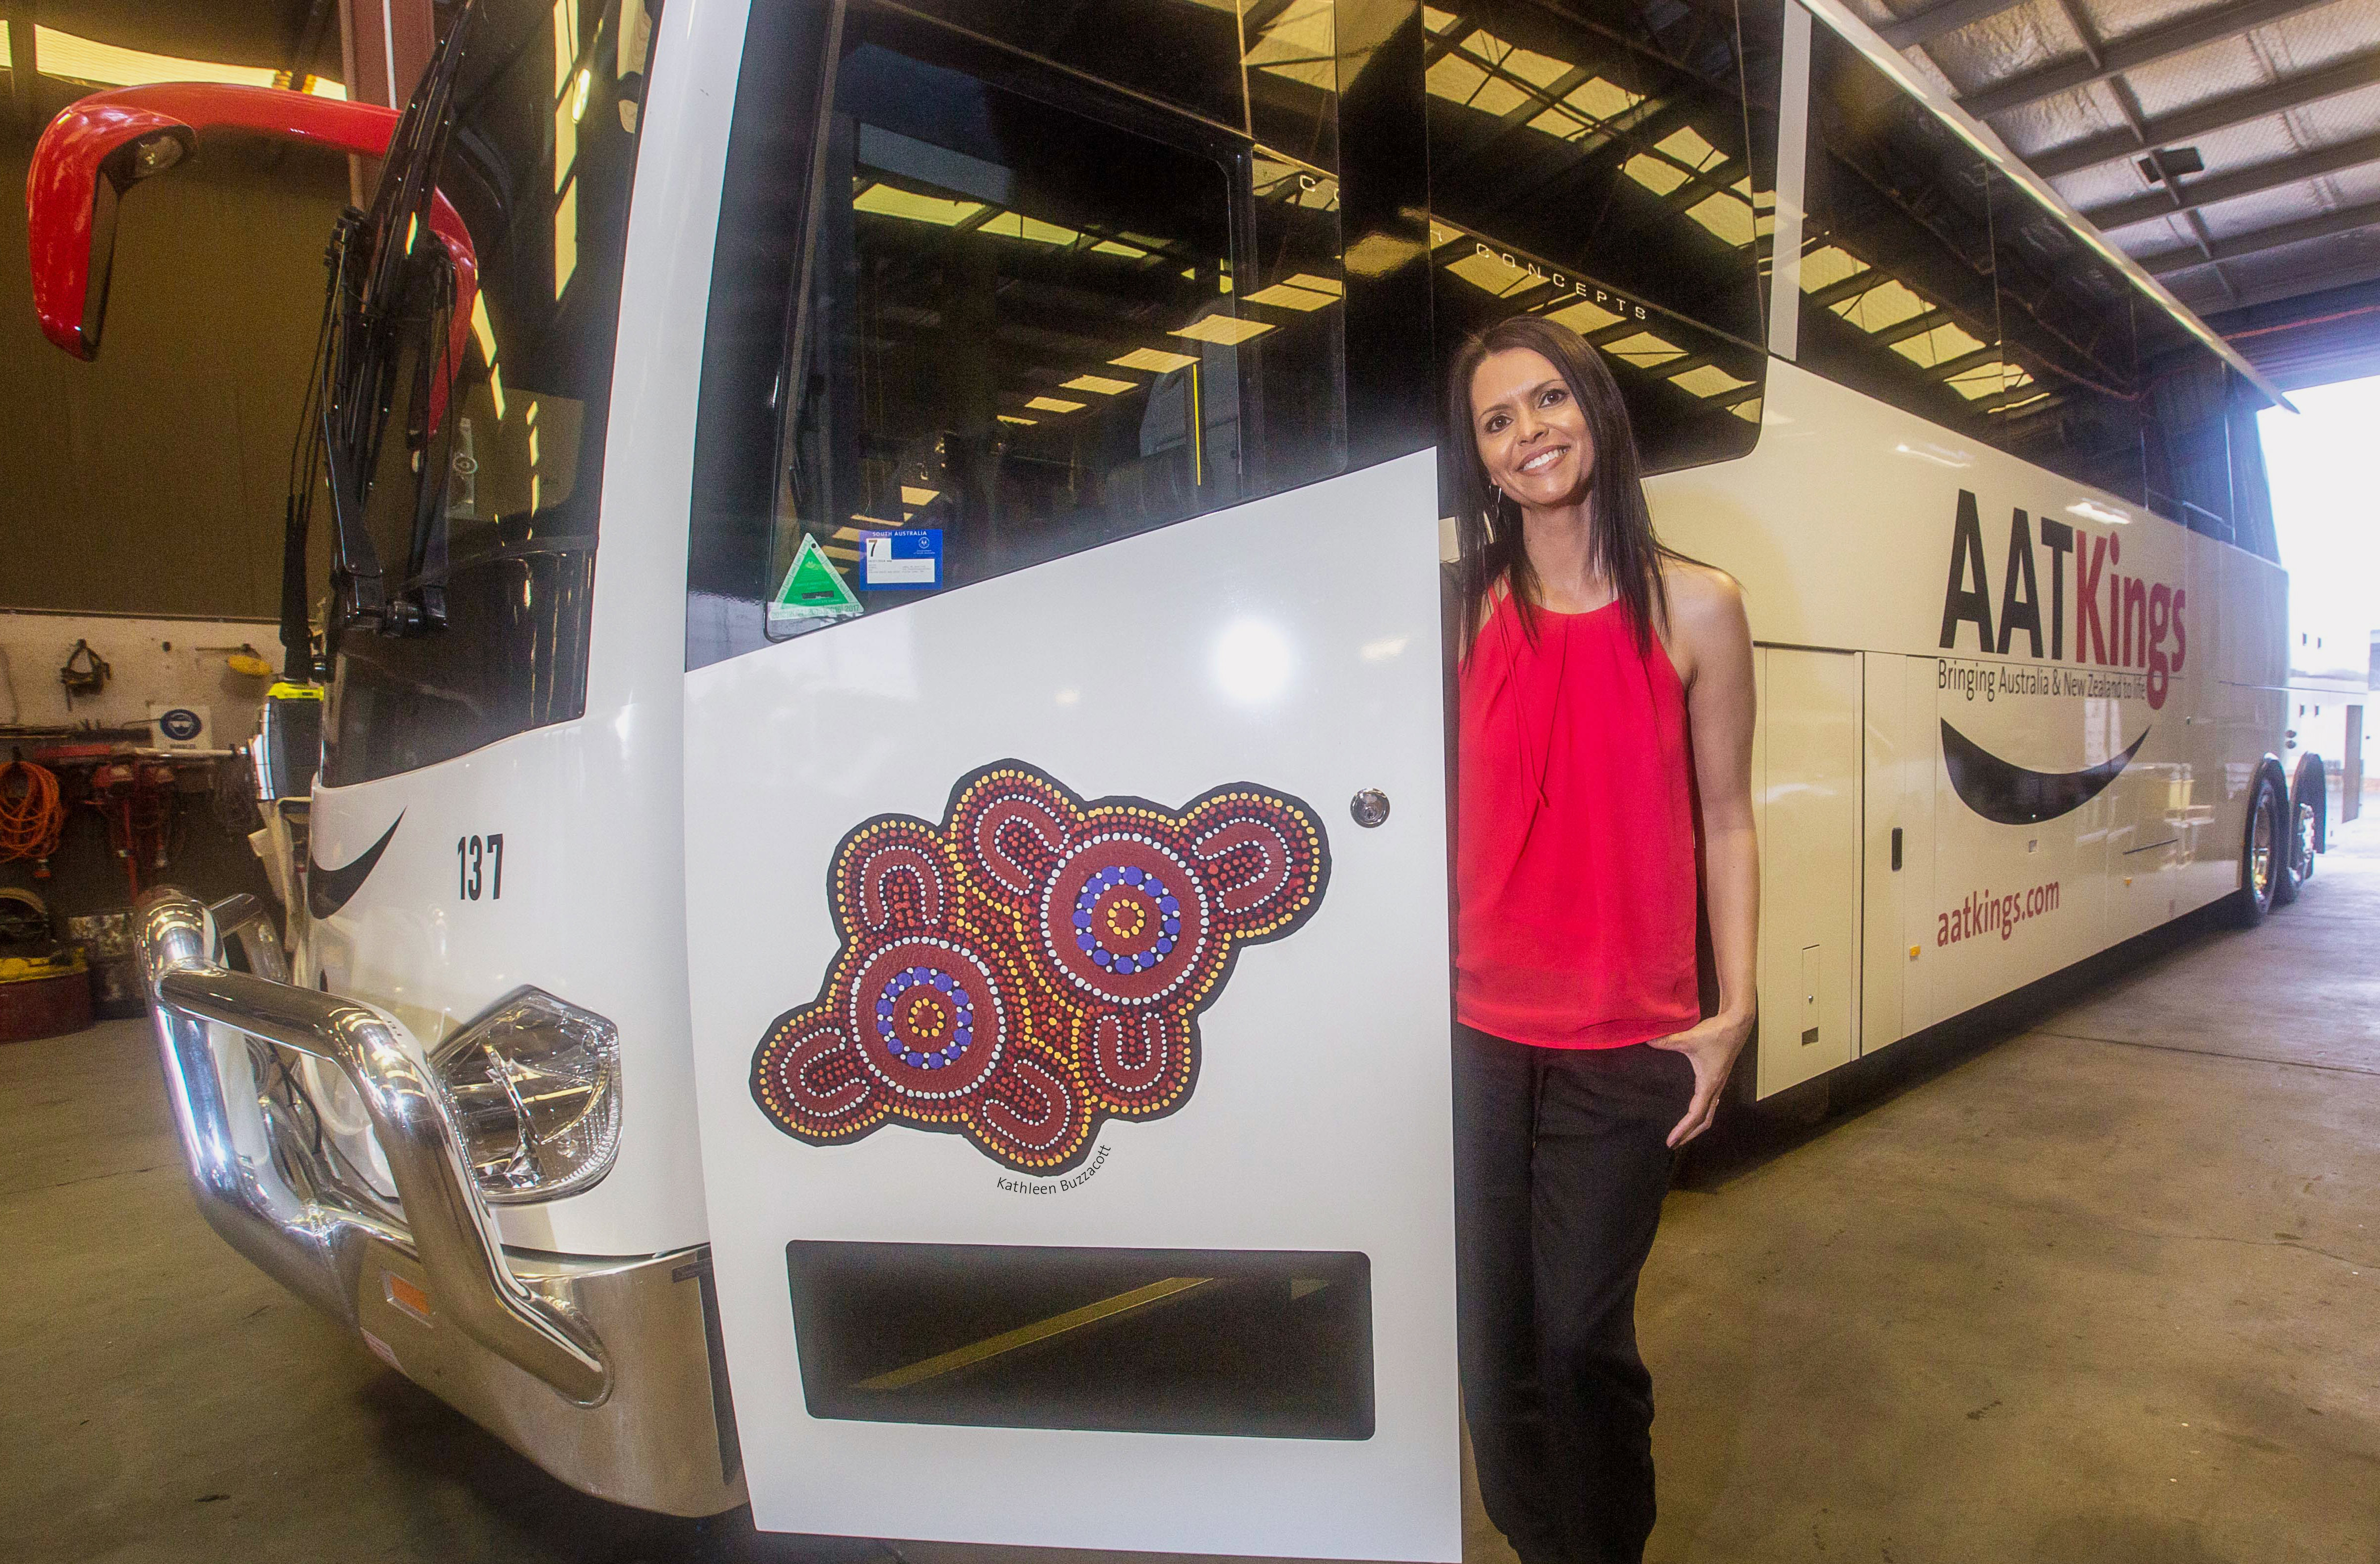 Maruku Artist Kathleen Buzzacott, with her work displayed on an AAT Kings coach in the Red Centre